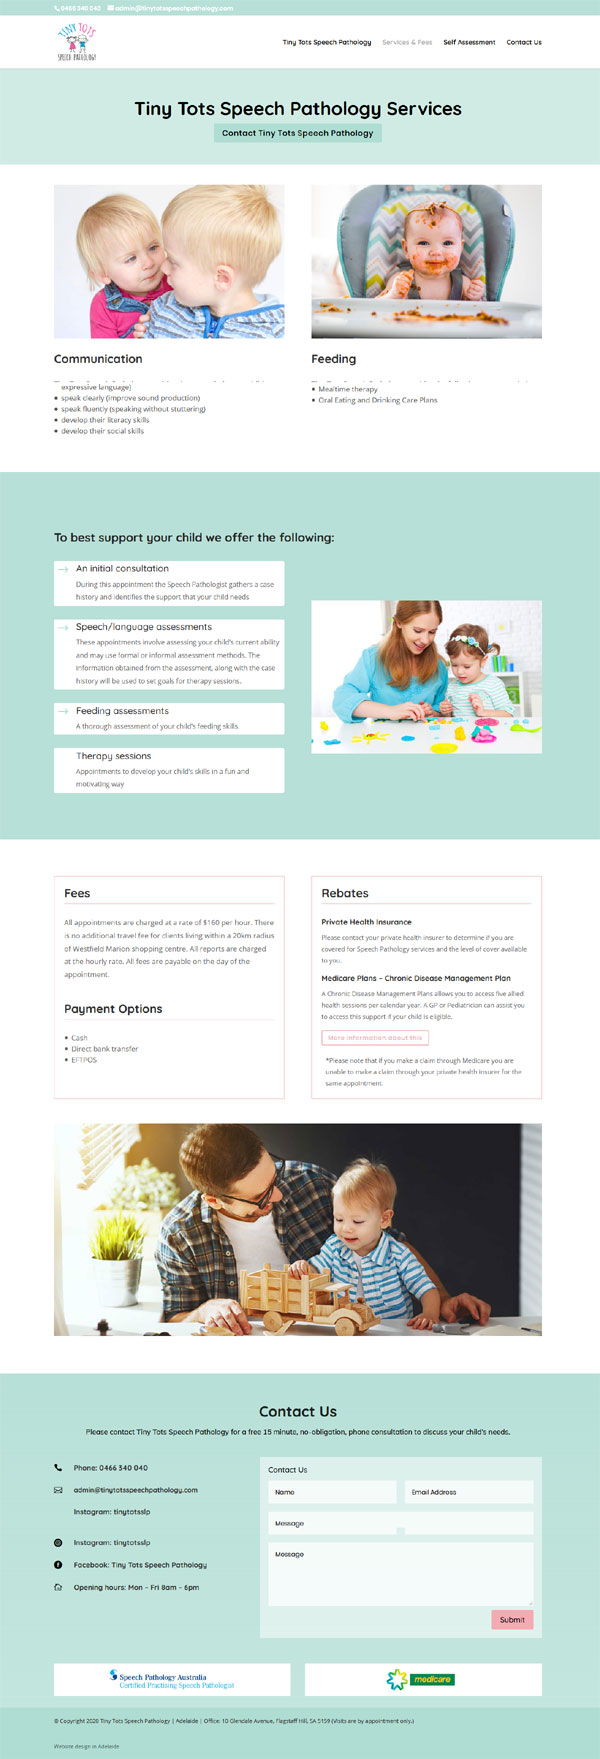 website designer for a speech pathology website